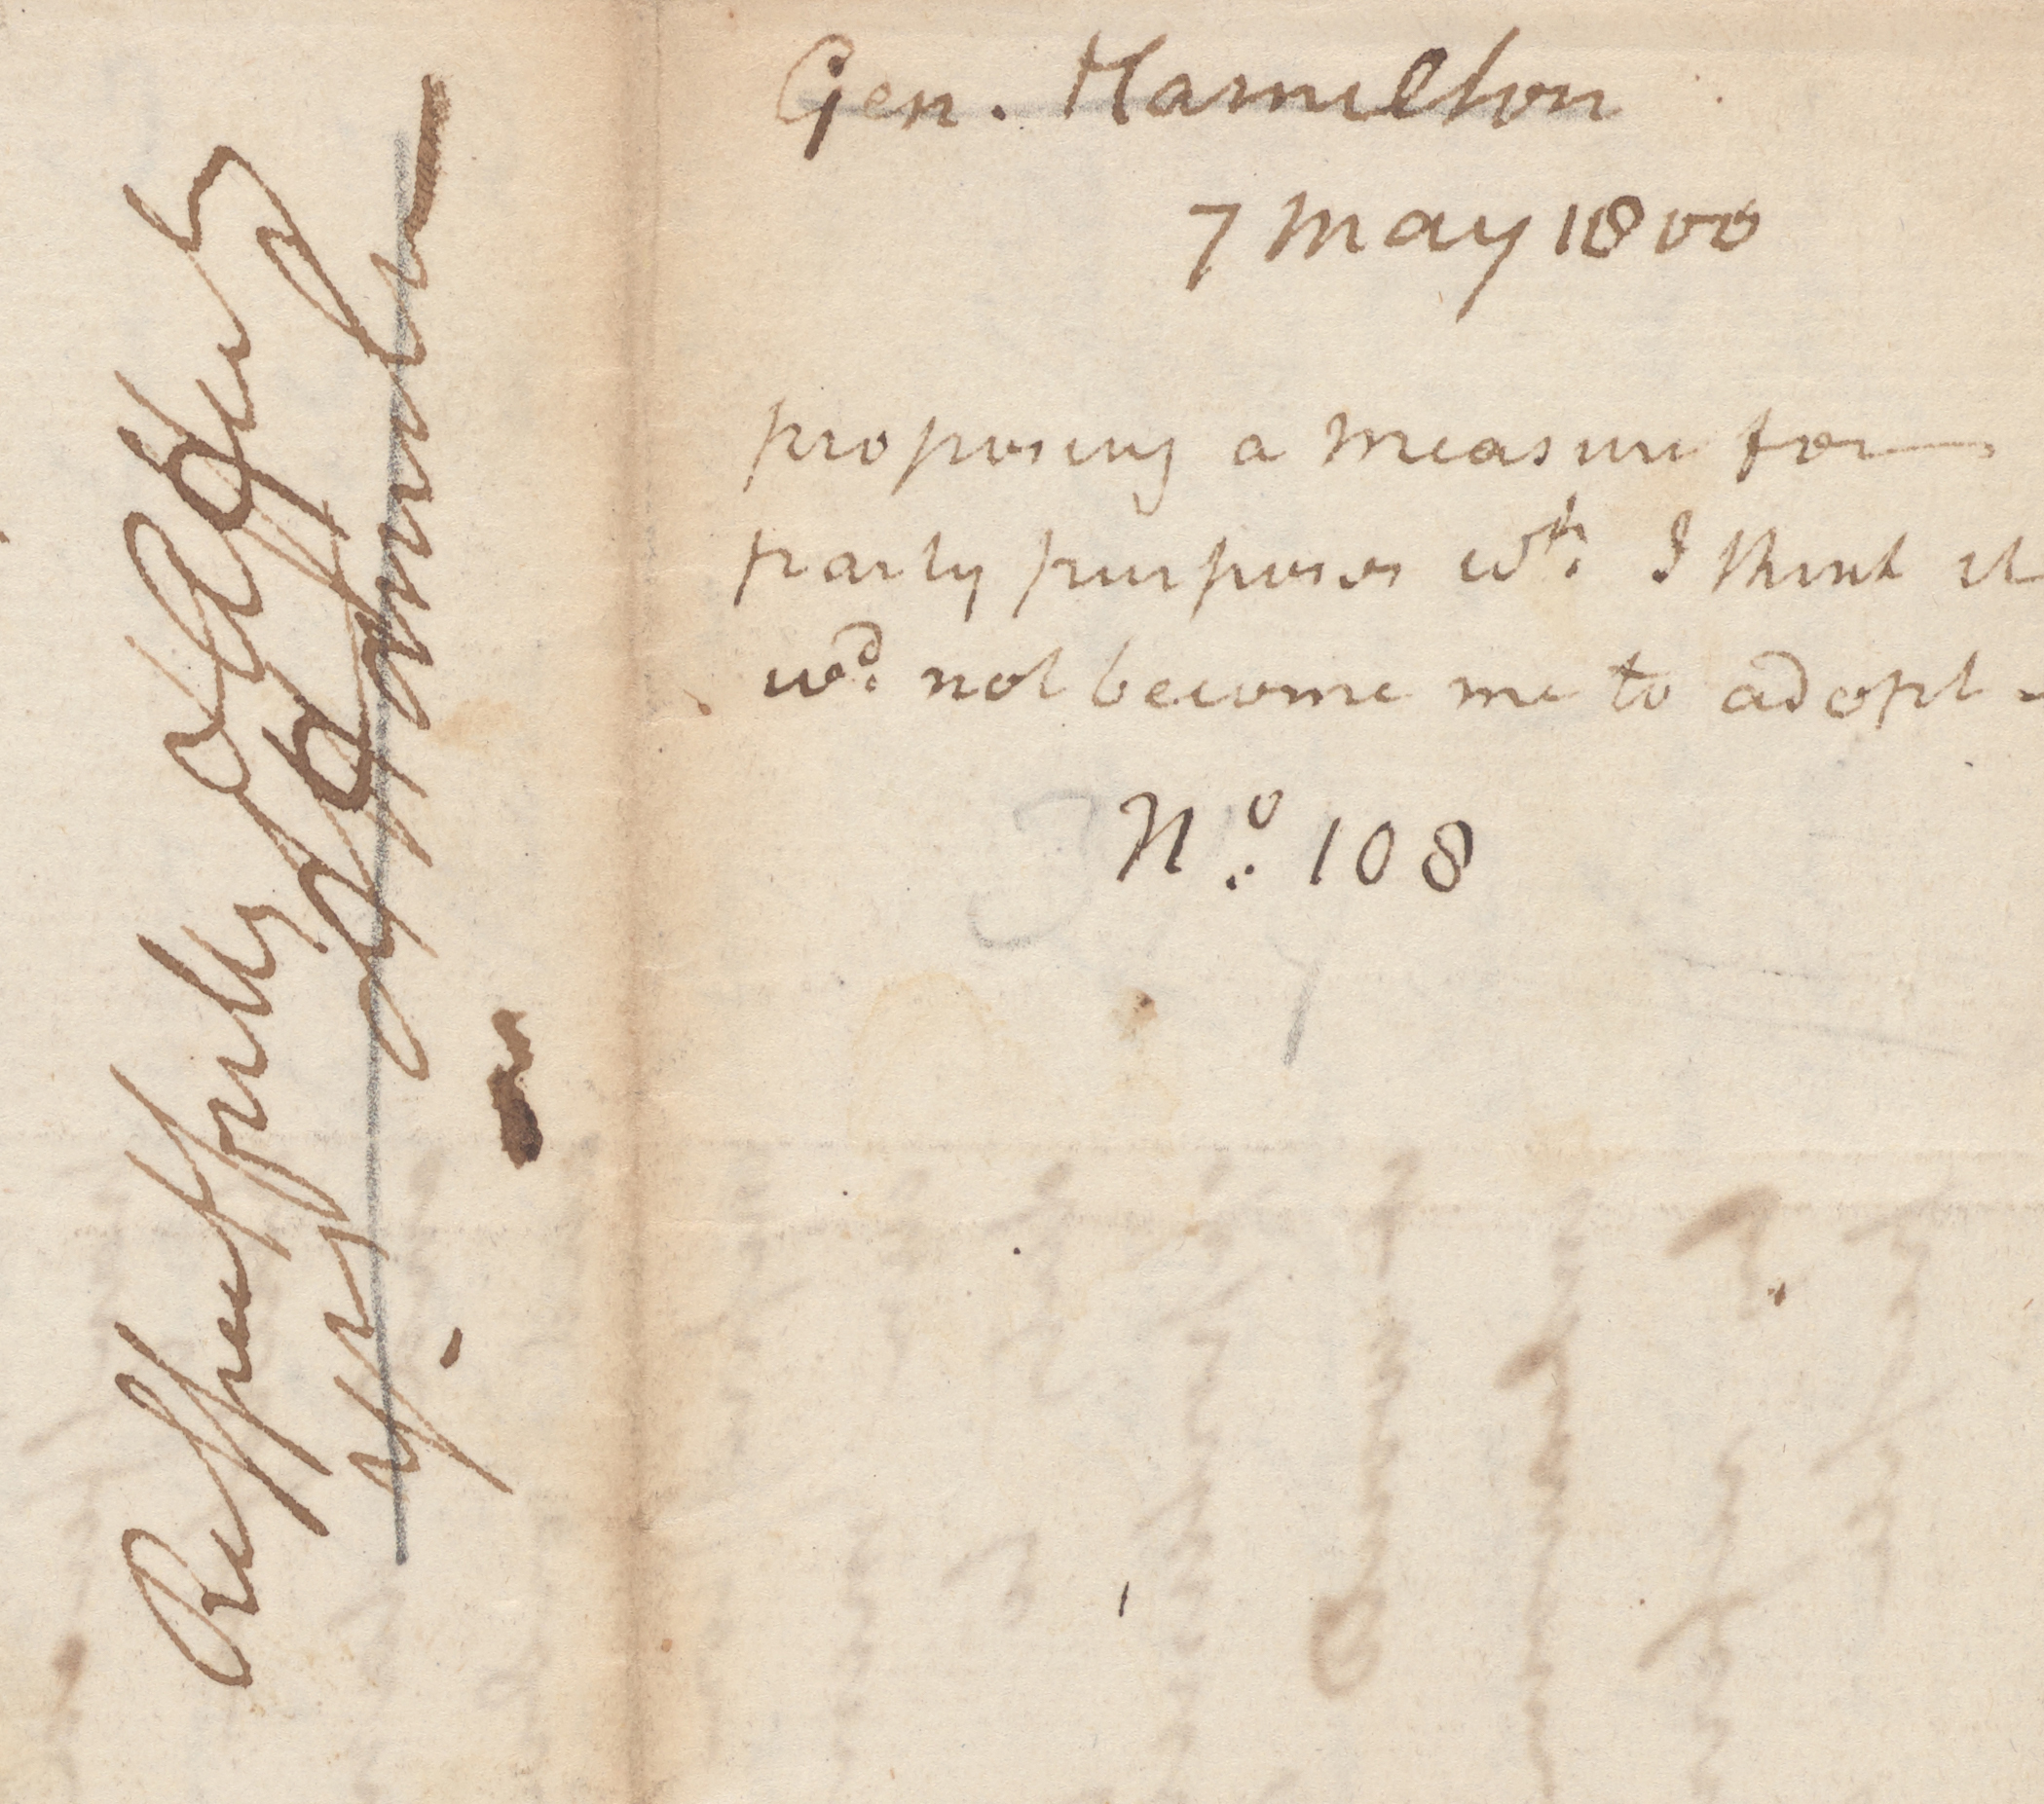 Alexander Hamilton to John Jay, detail of endorsement